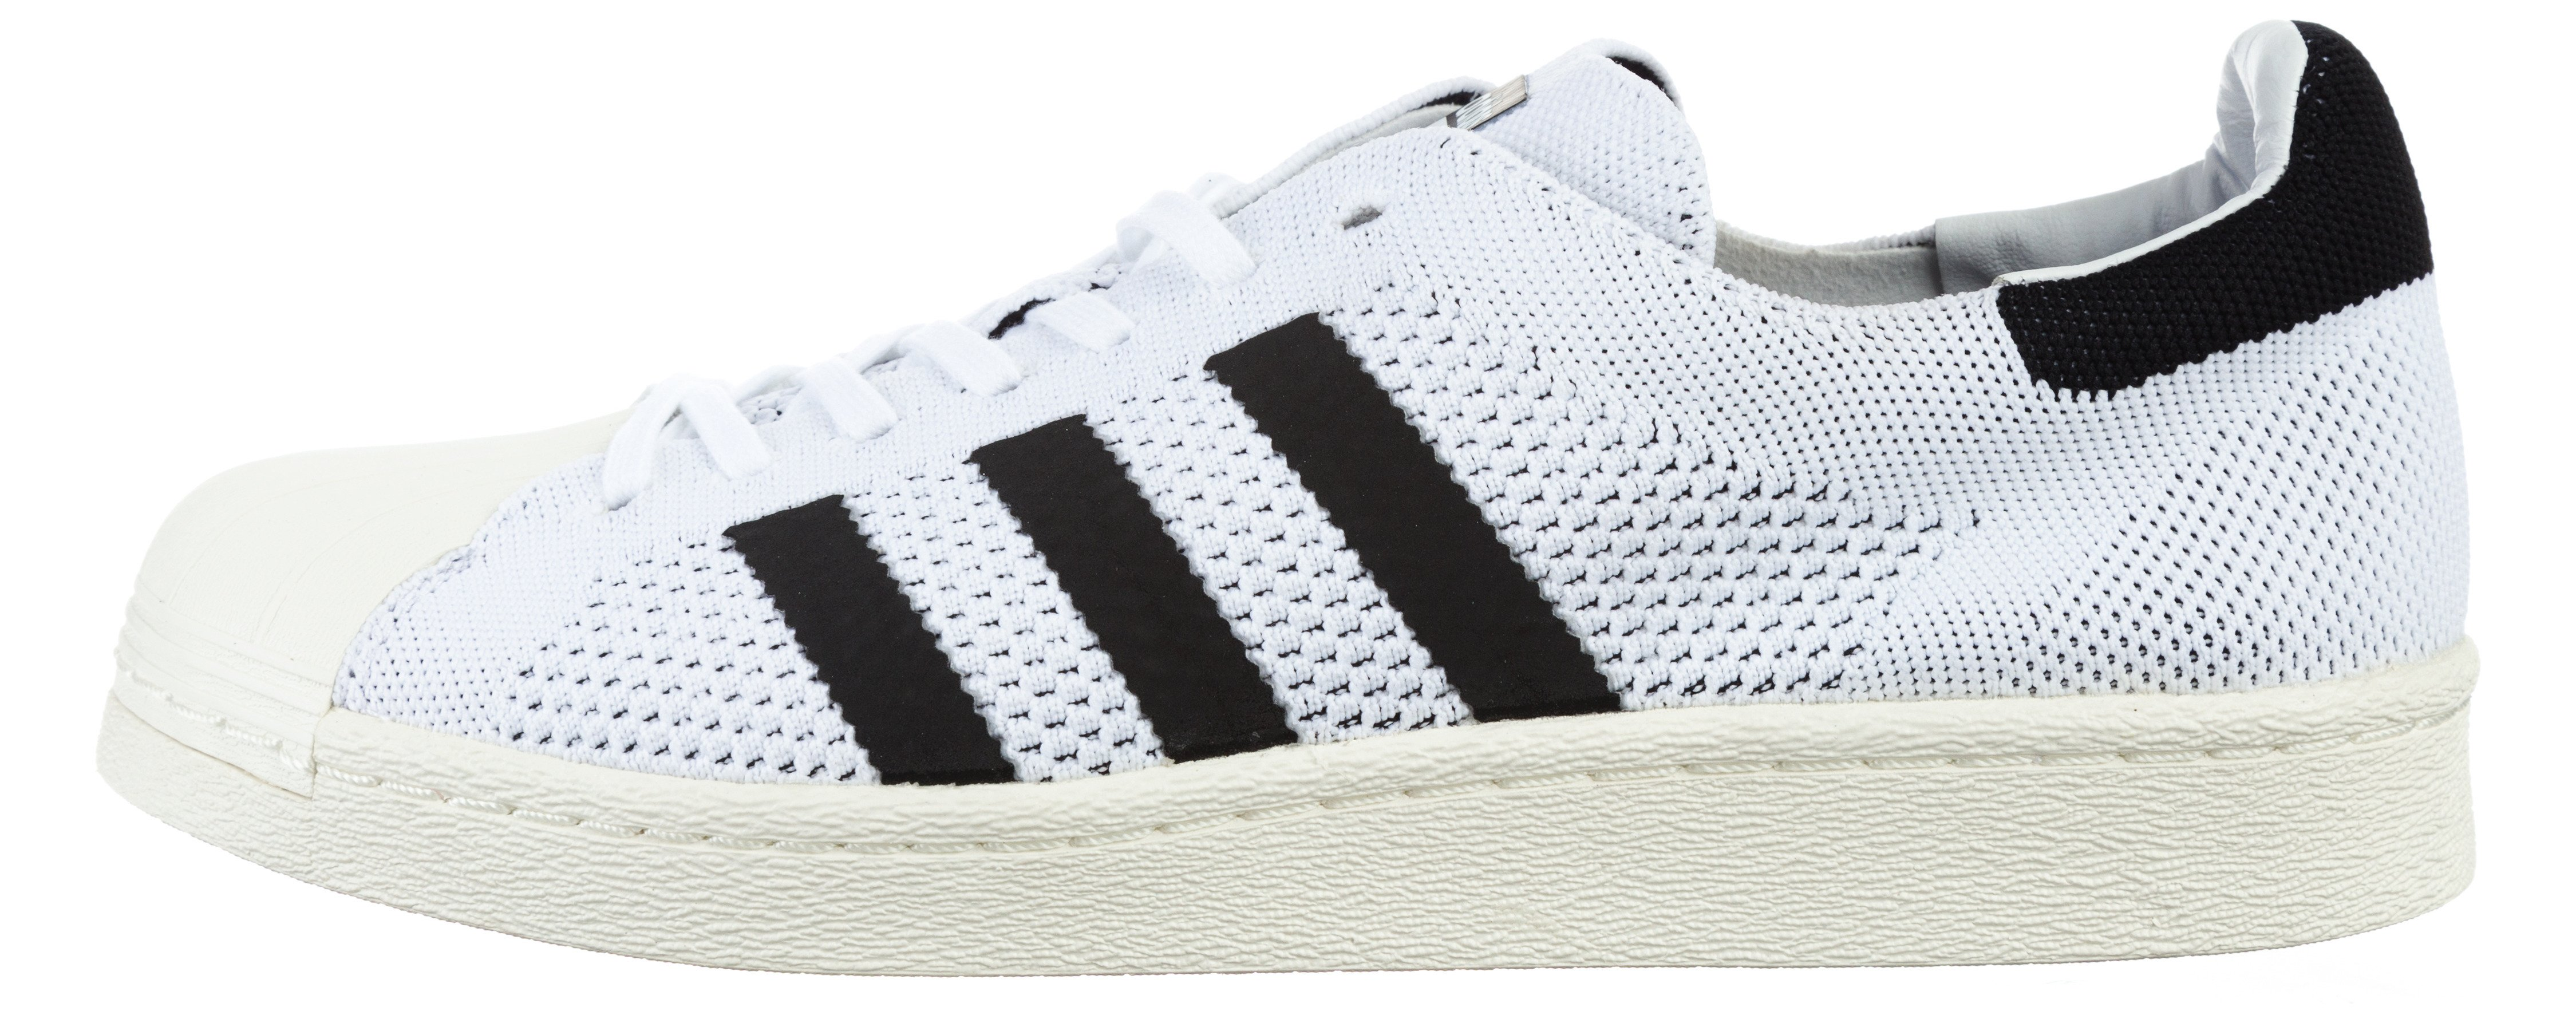 adidas Originals Superstar Boost Primeknit Tenisky 42 2/3